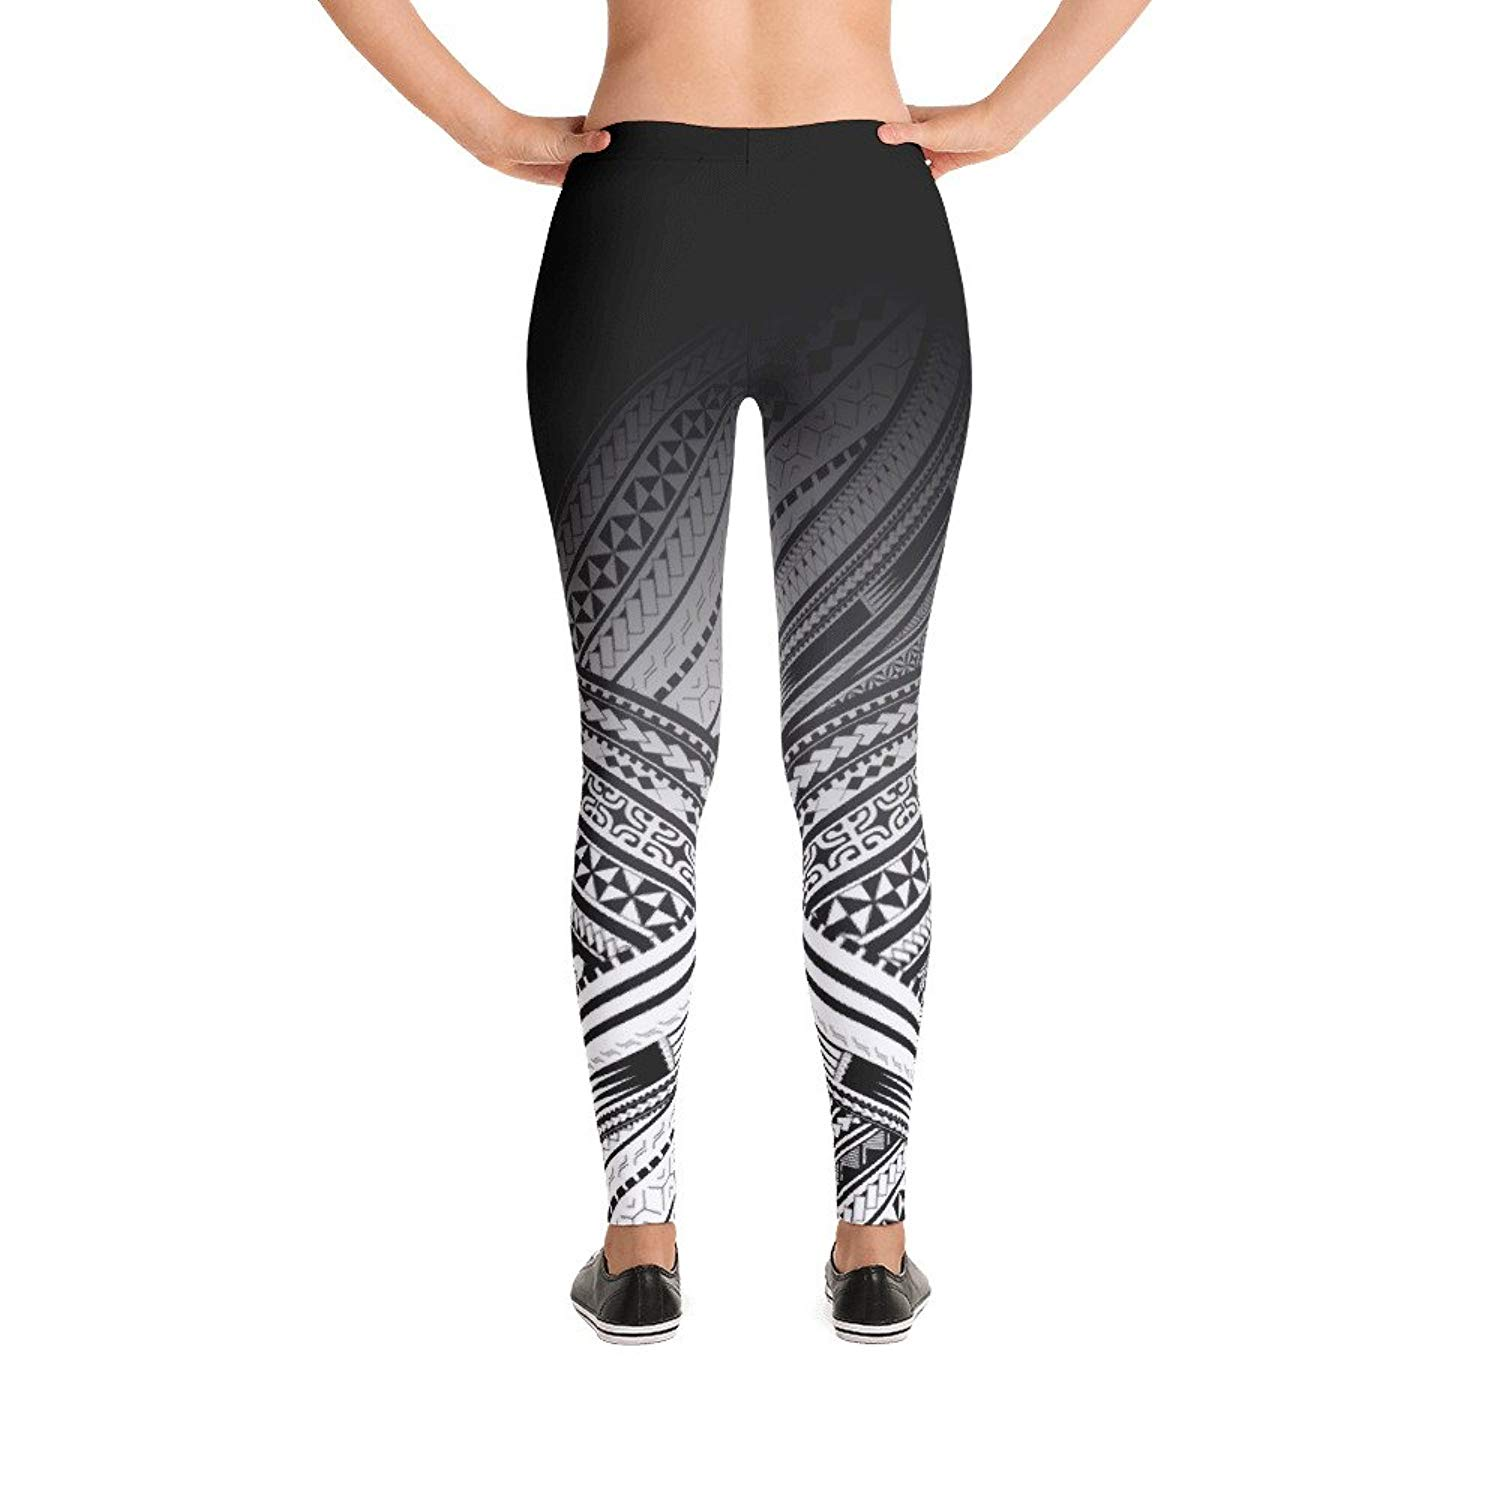 Athletic Yoga Leggings from DiaNoche Designs by Pam Amos Quilted Flower